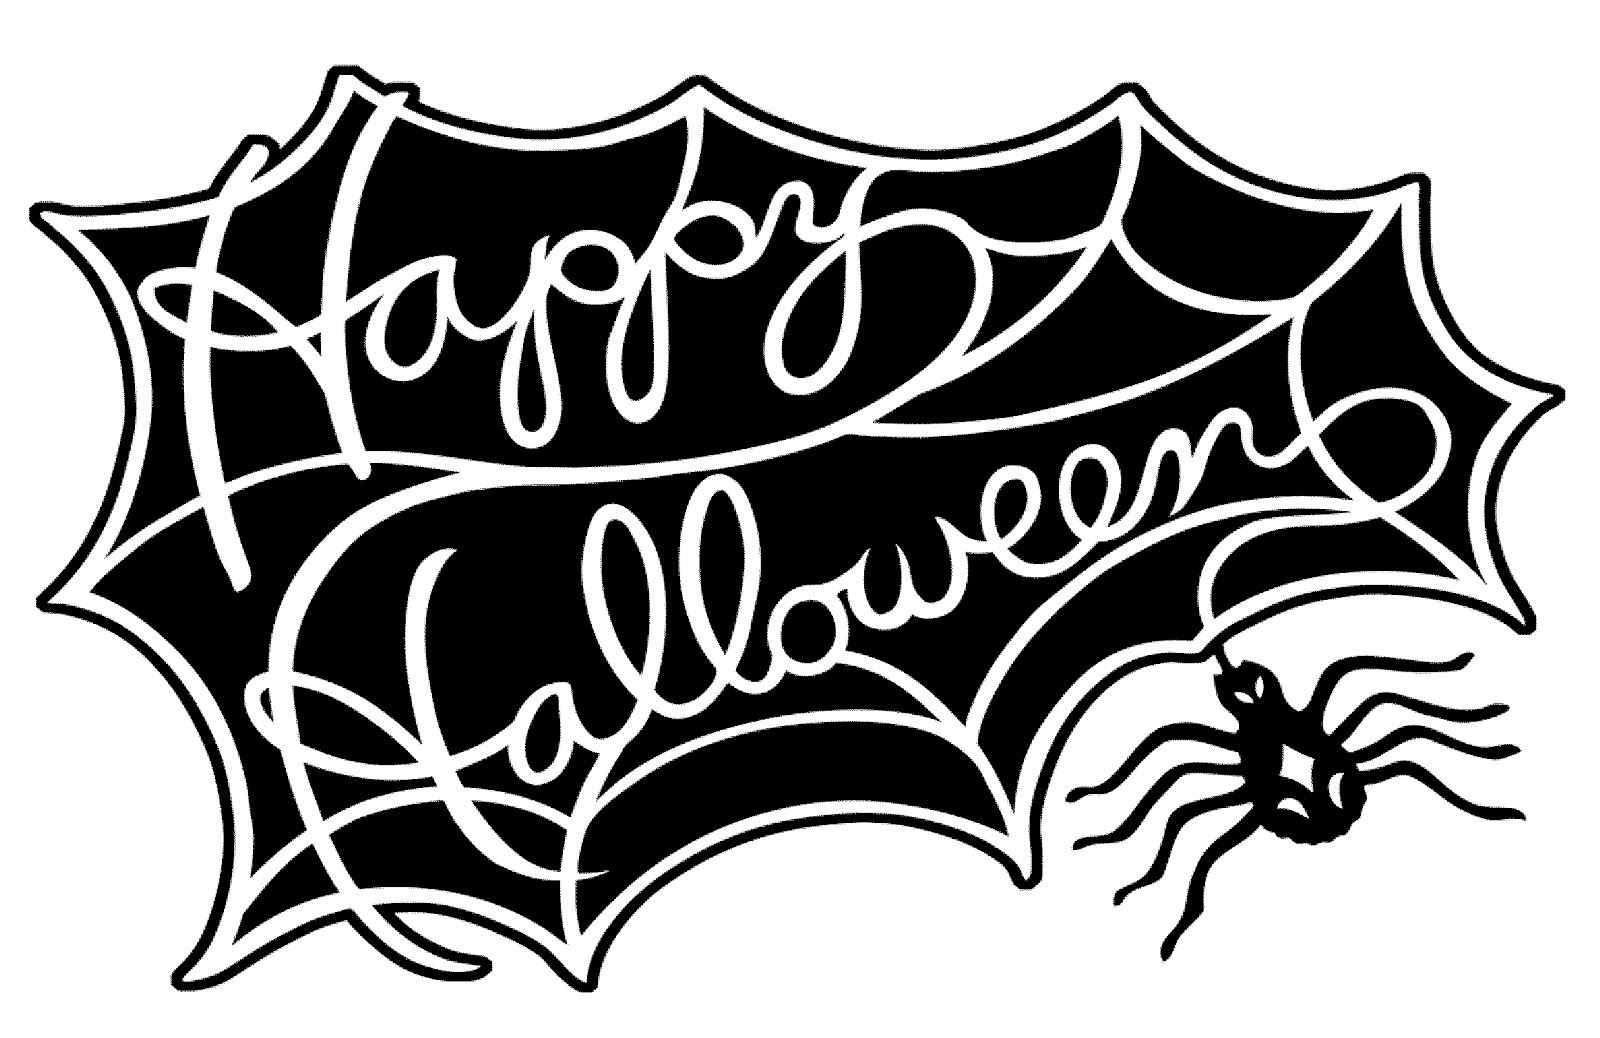 picture relating to Free Printable Halloween Silhouettes known as Typical Halloween Silhouettes Style Artwork Generate